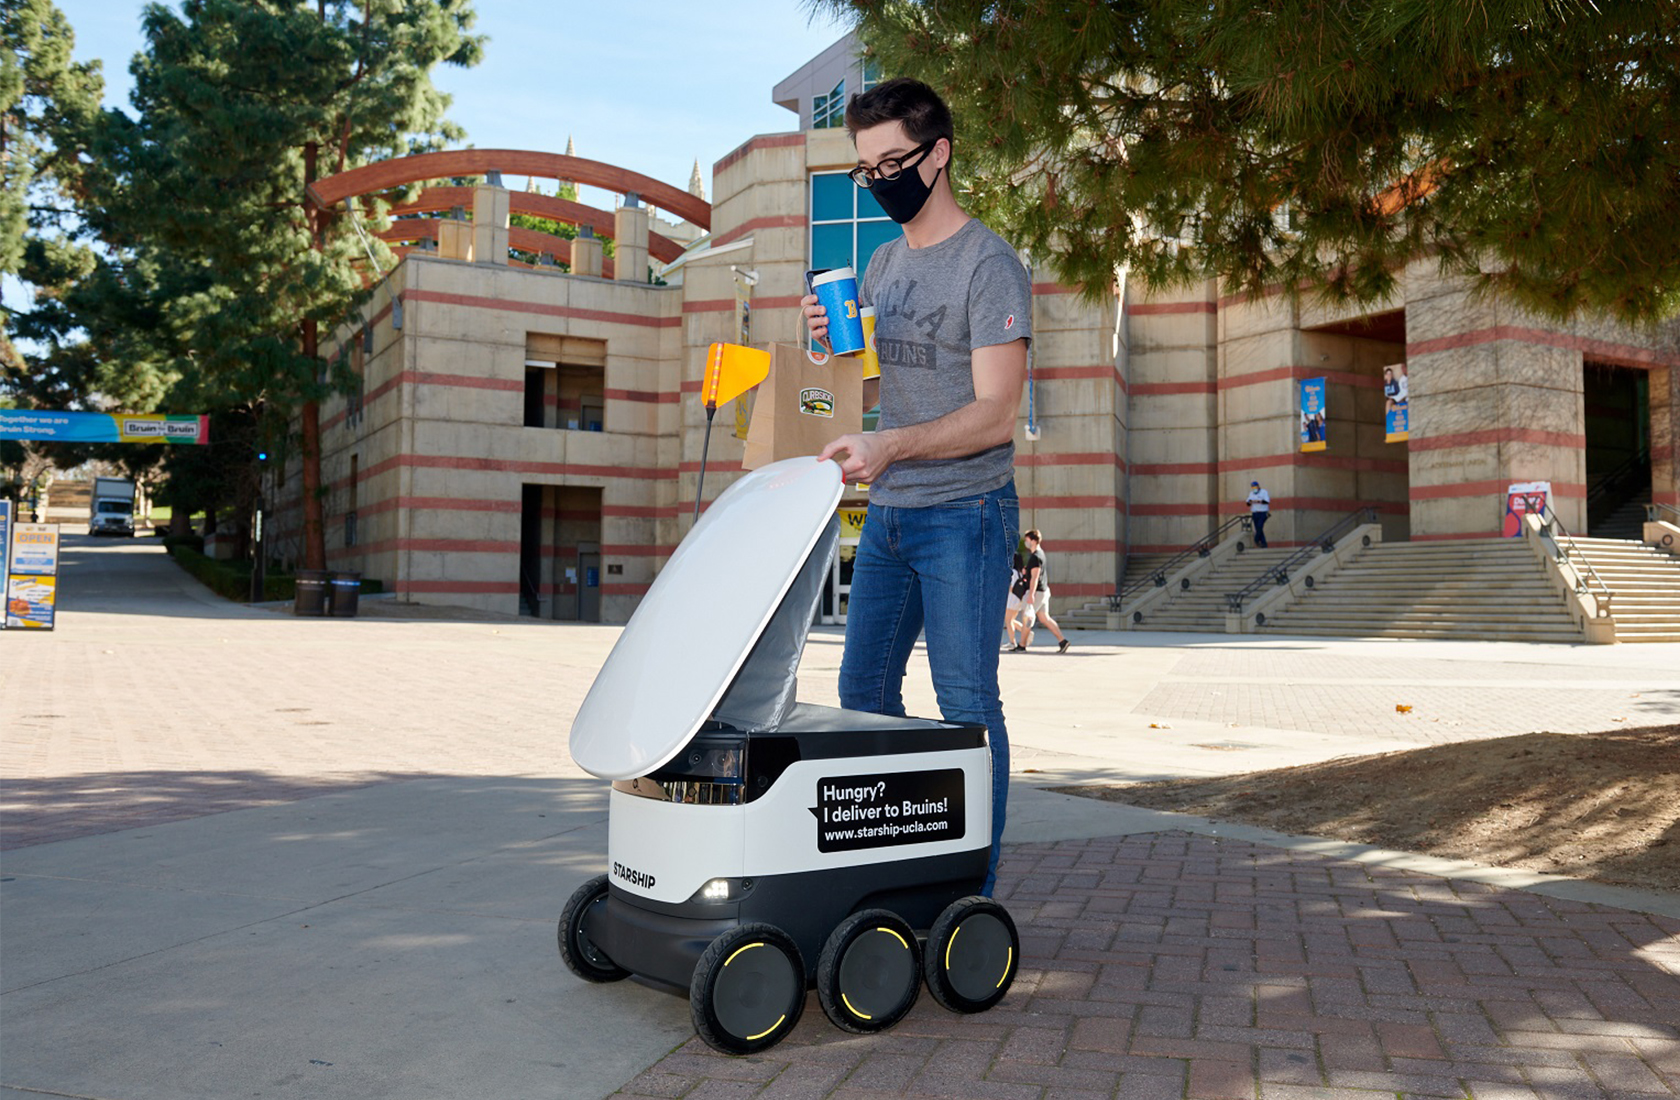 Delivery Robot infront of Ackerman